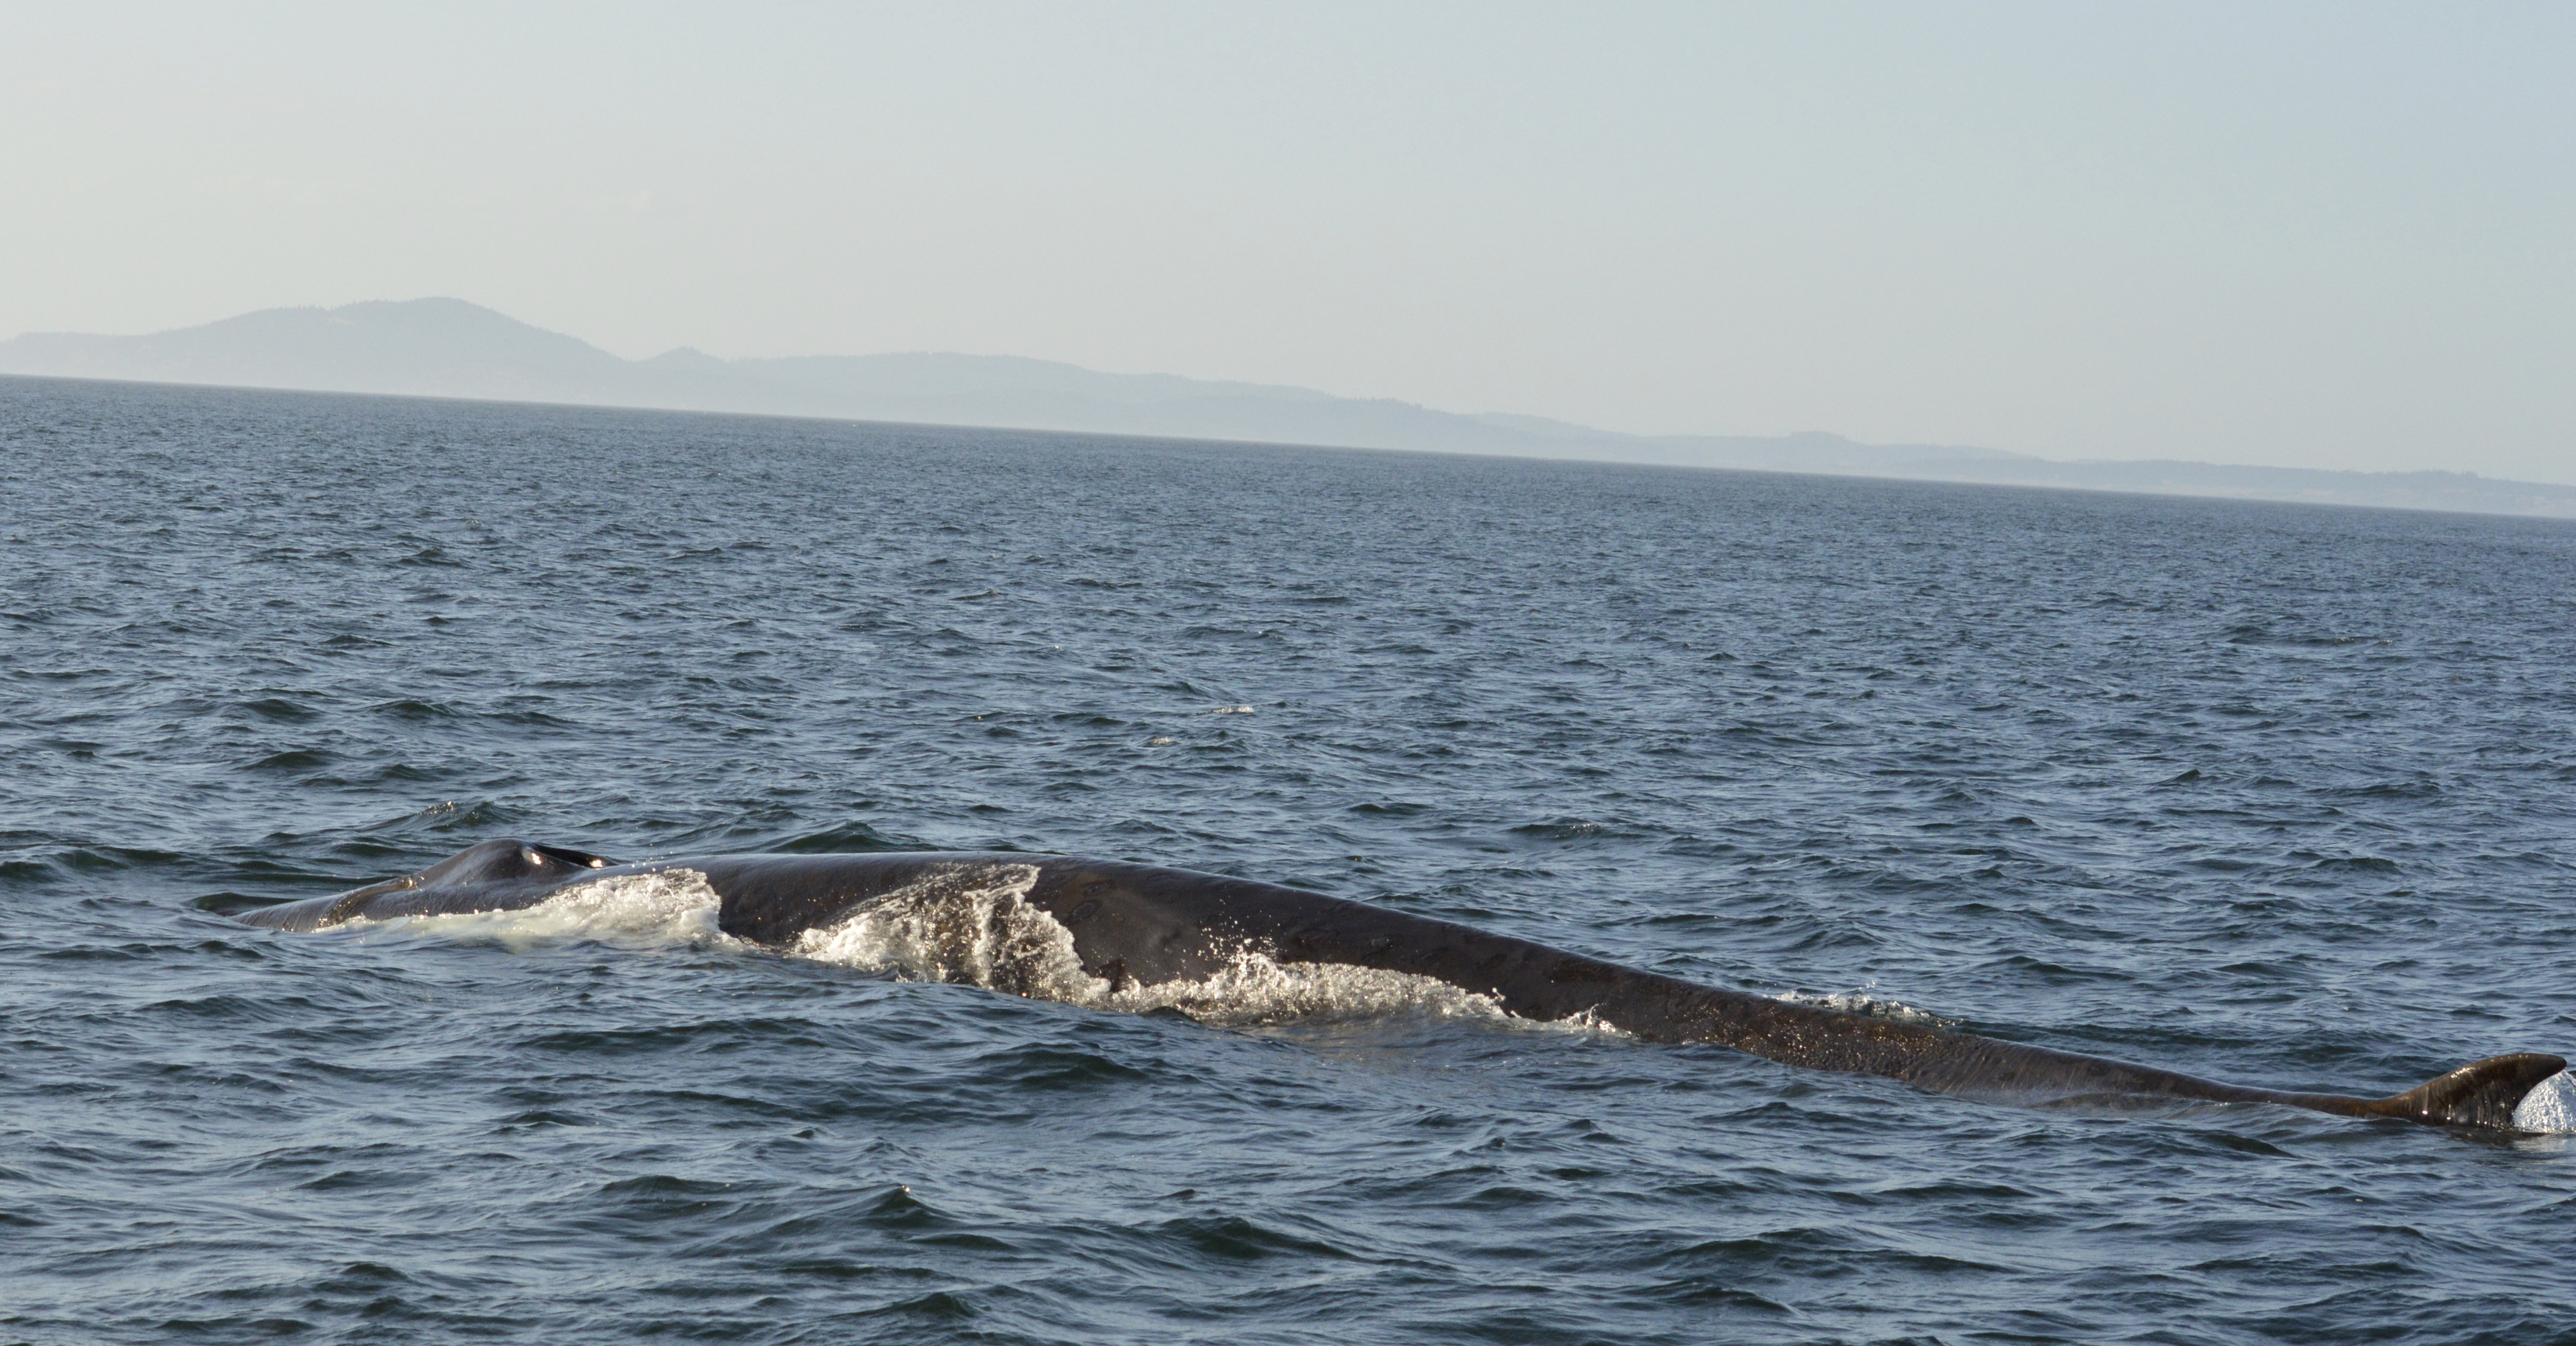 Finally, my first fin whale!